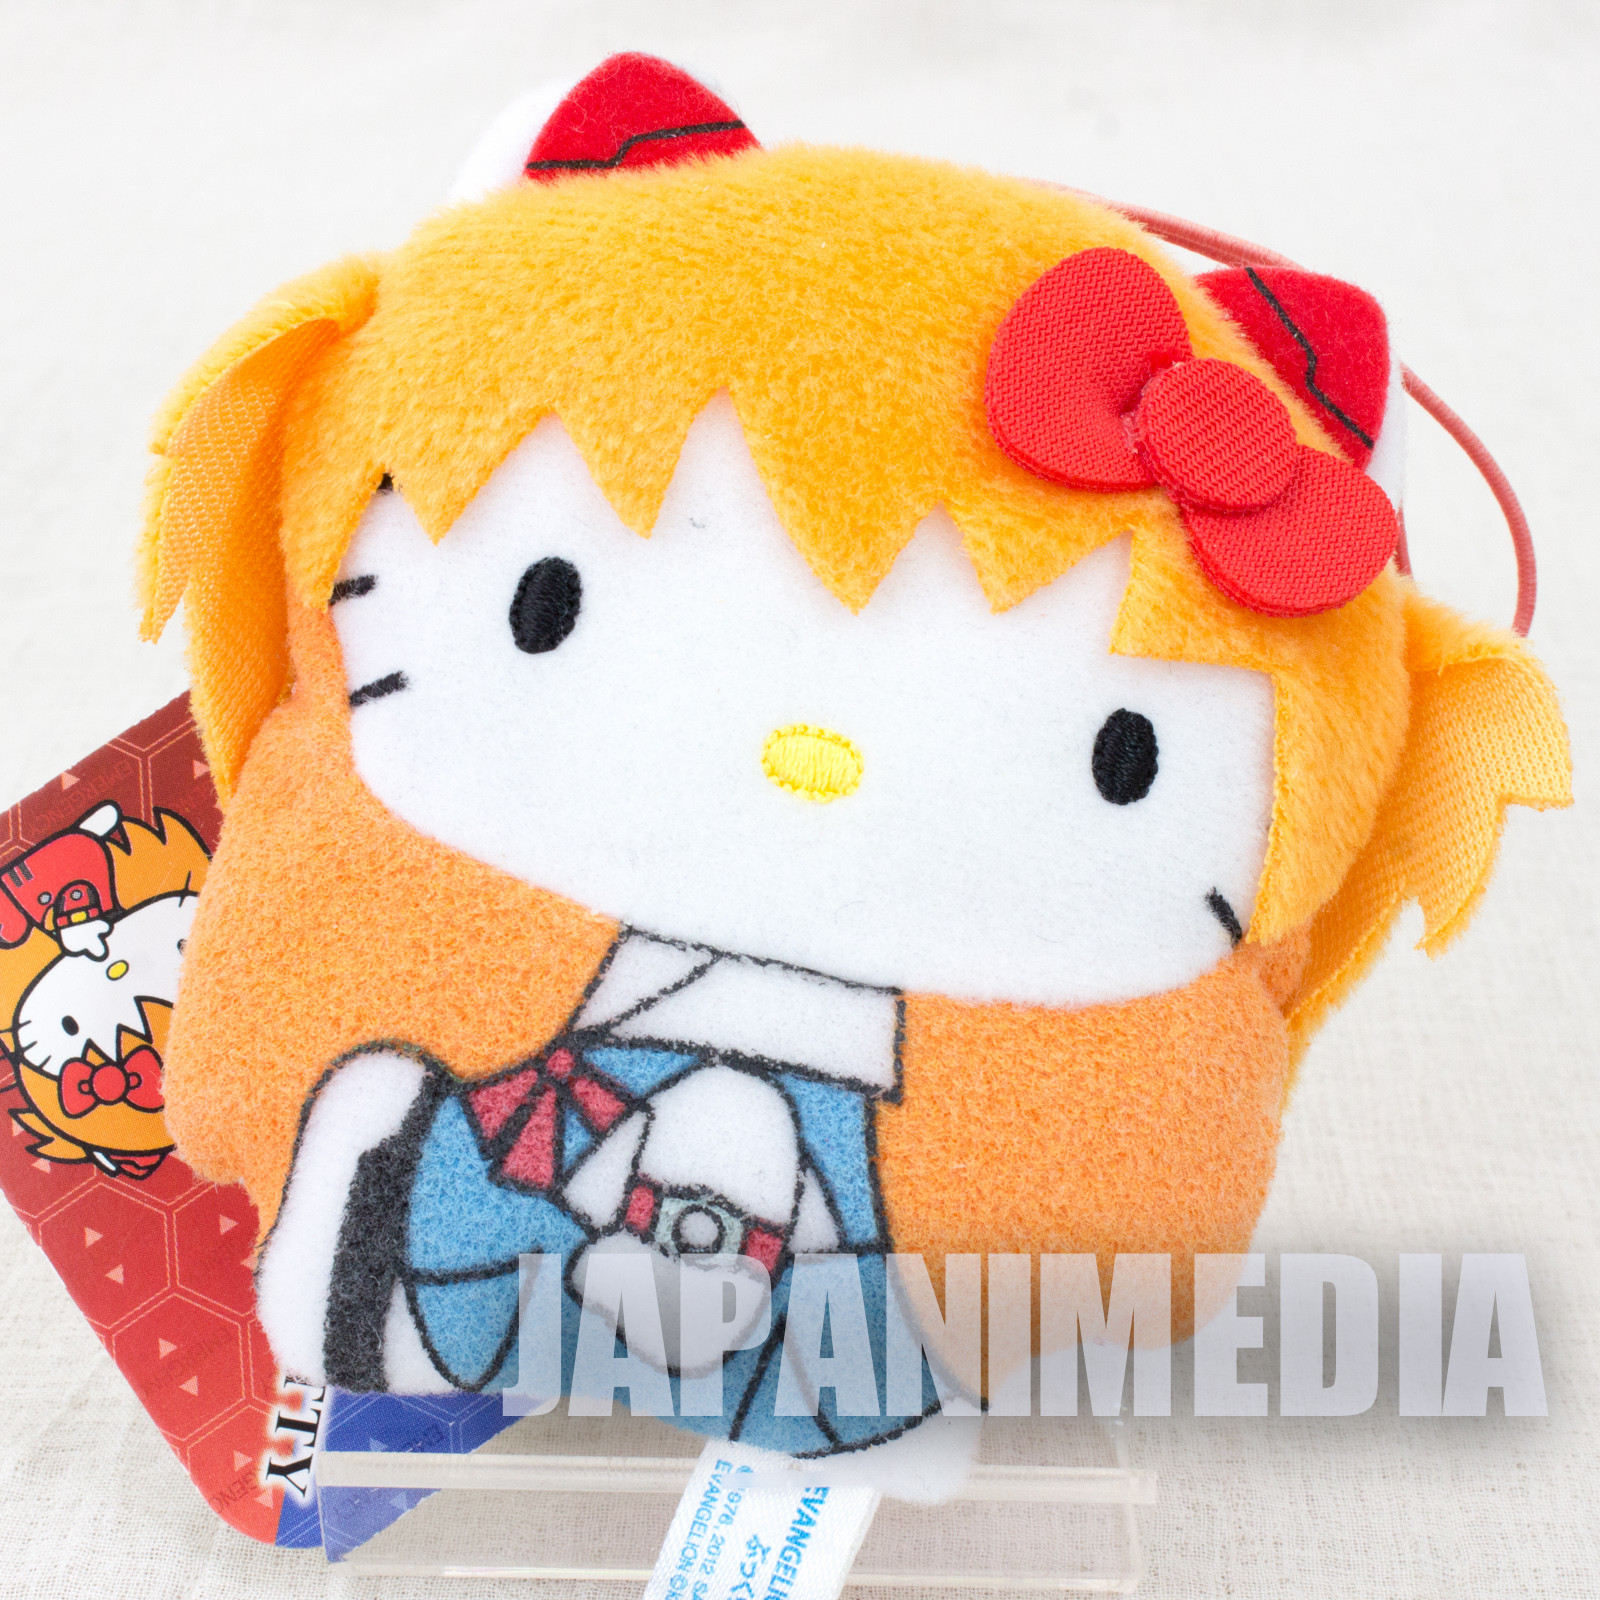 Evangelion x Hello Kitty Asuka Langley Plush Doll Uniform ver. Sanrio JAPAN ANIME